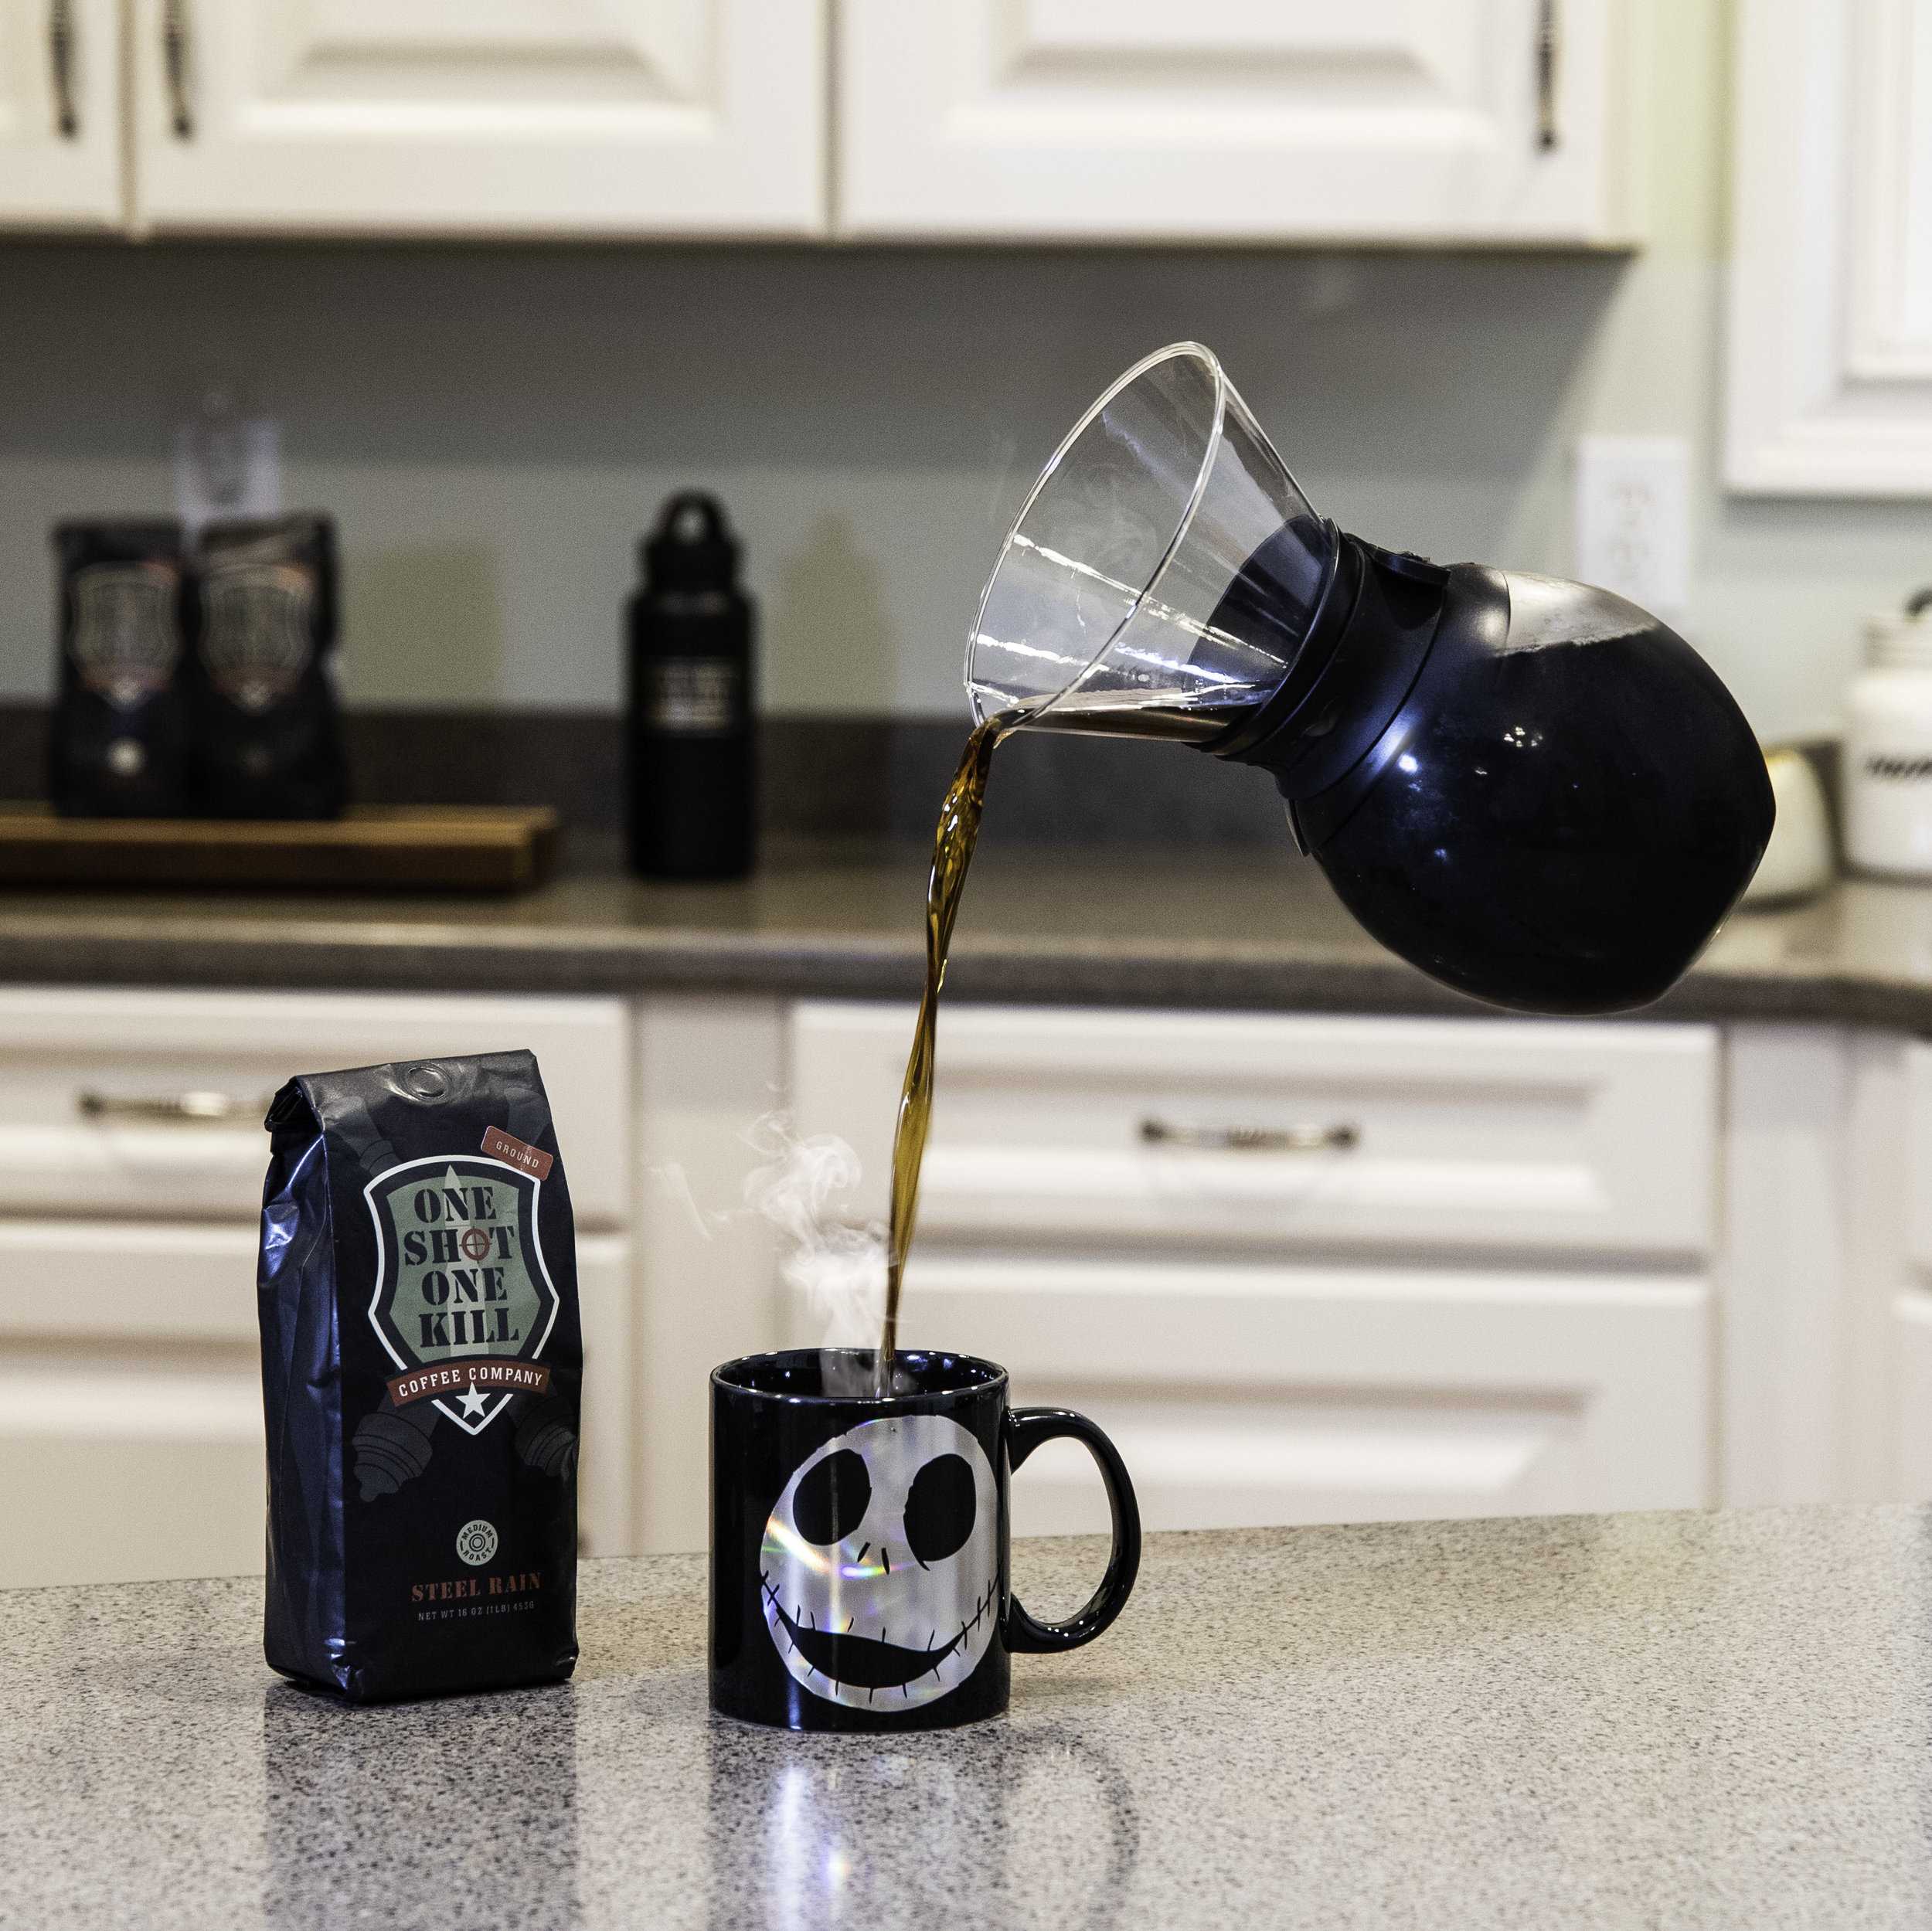 Sometimes you just don't exist before coffee. - Happy Halloween from 1 Shot 1 Kill Coffee.